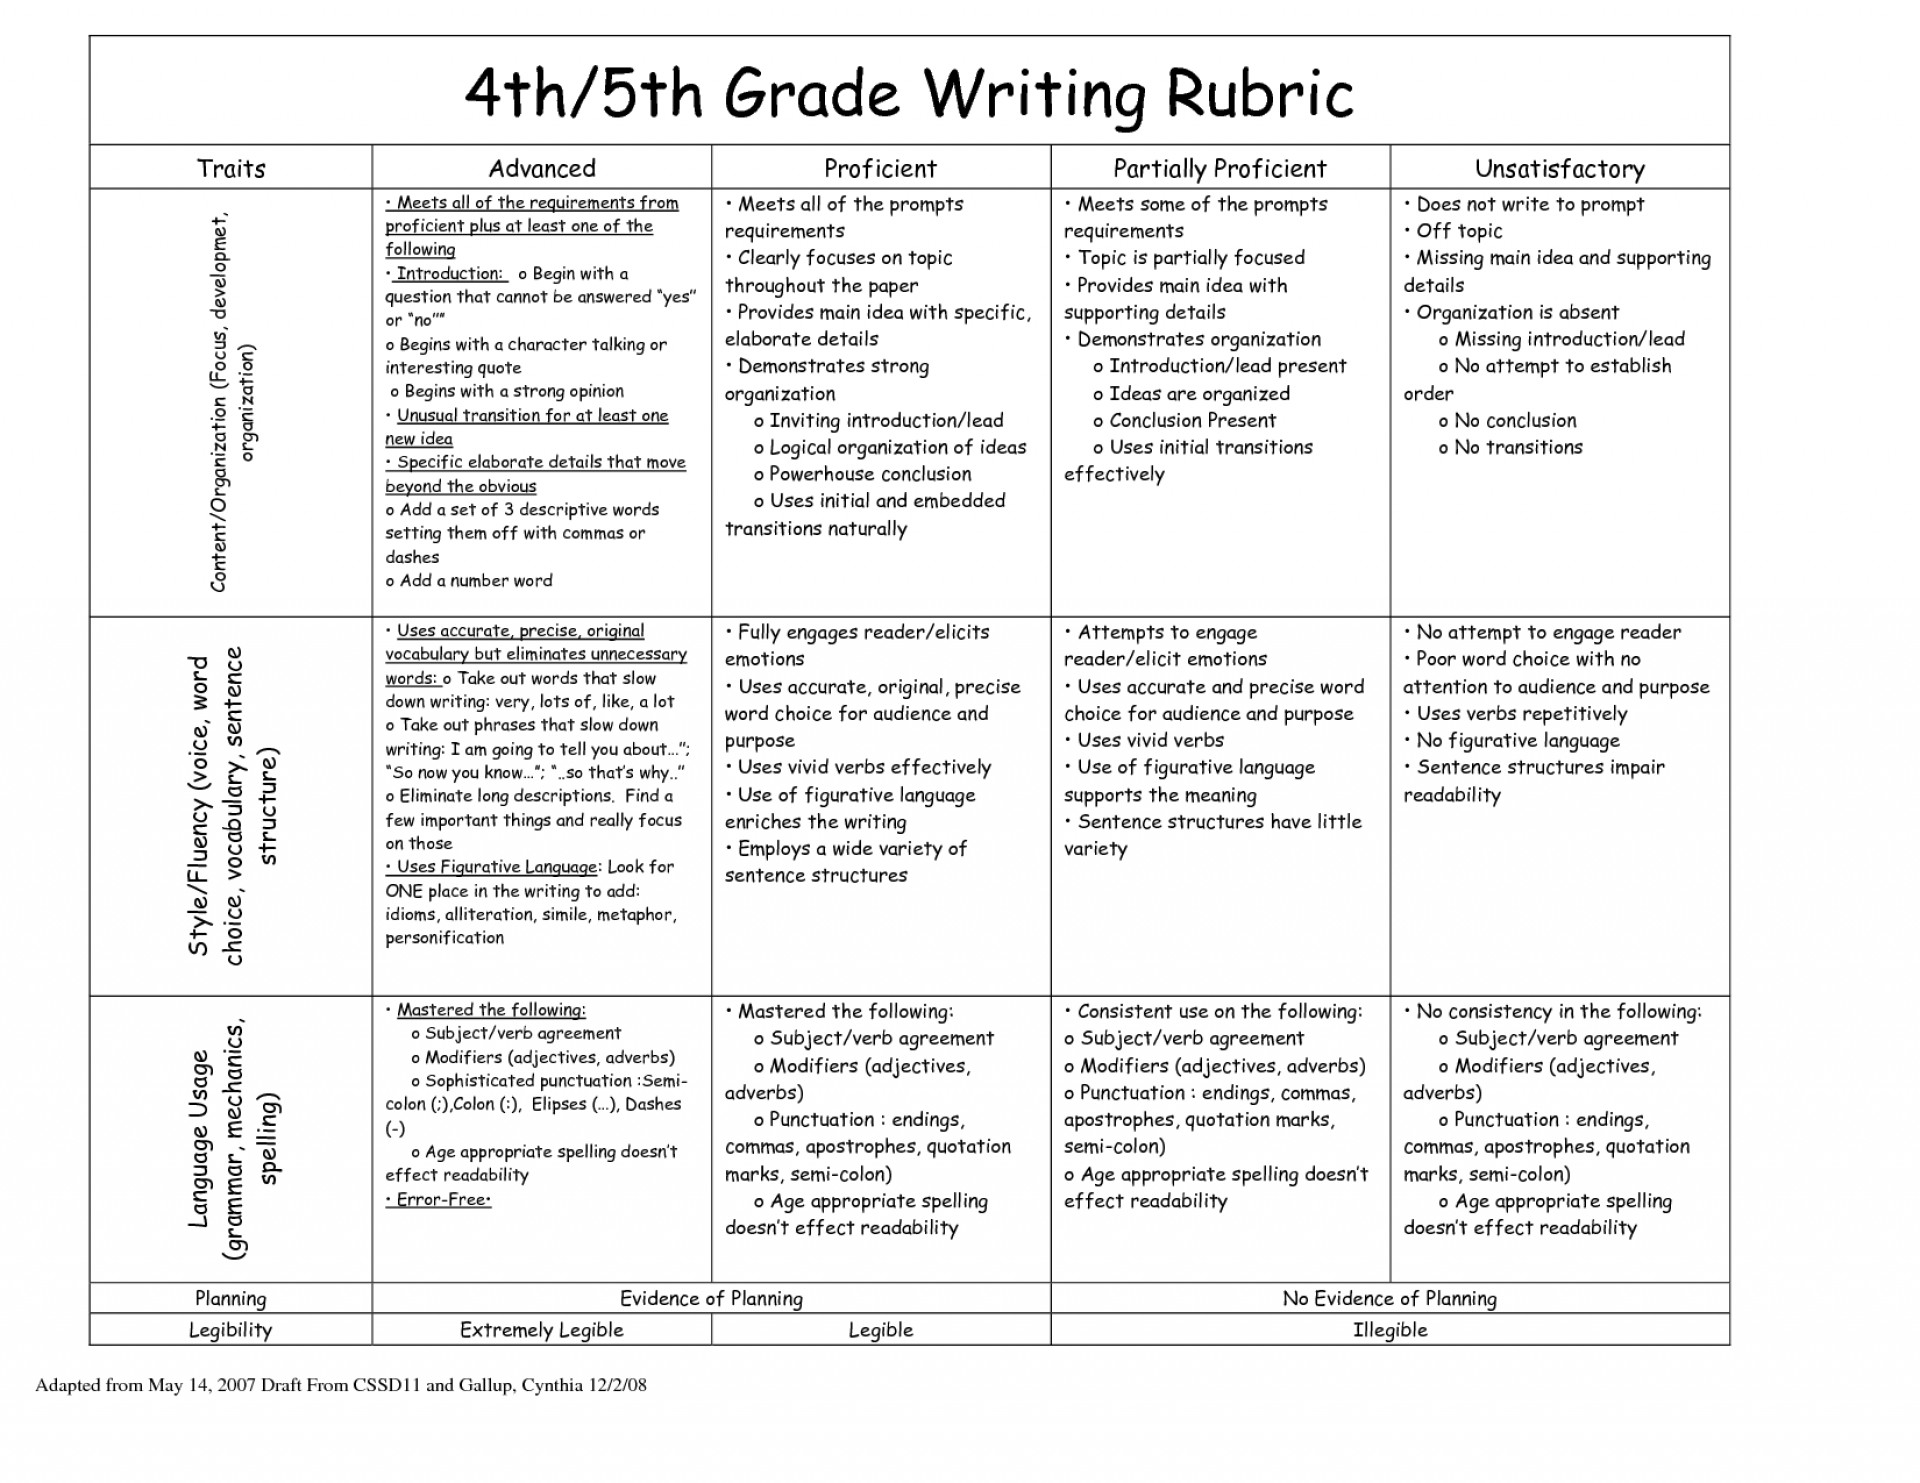 022 4th Grade Opinion Writing Rubric 215476 Essay Example Creative Awesome Essays Topics For 5 4 1920